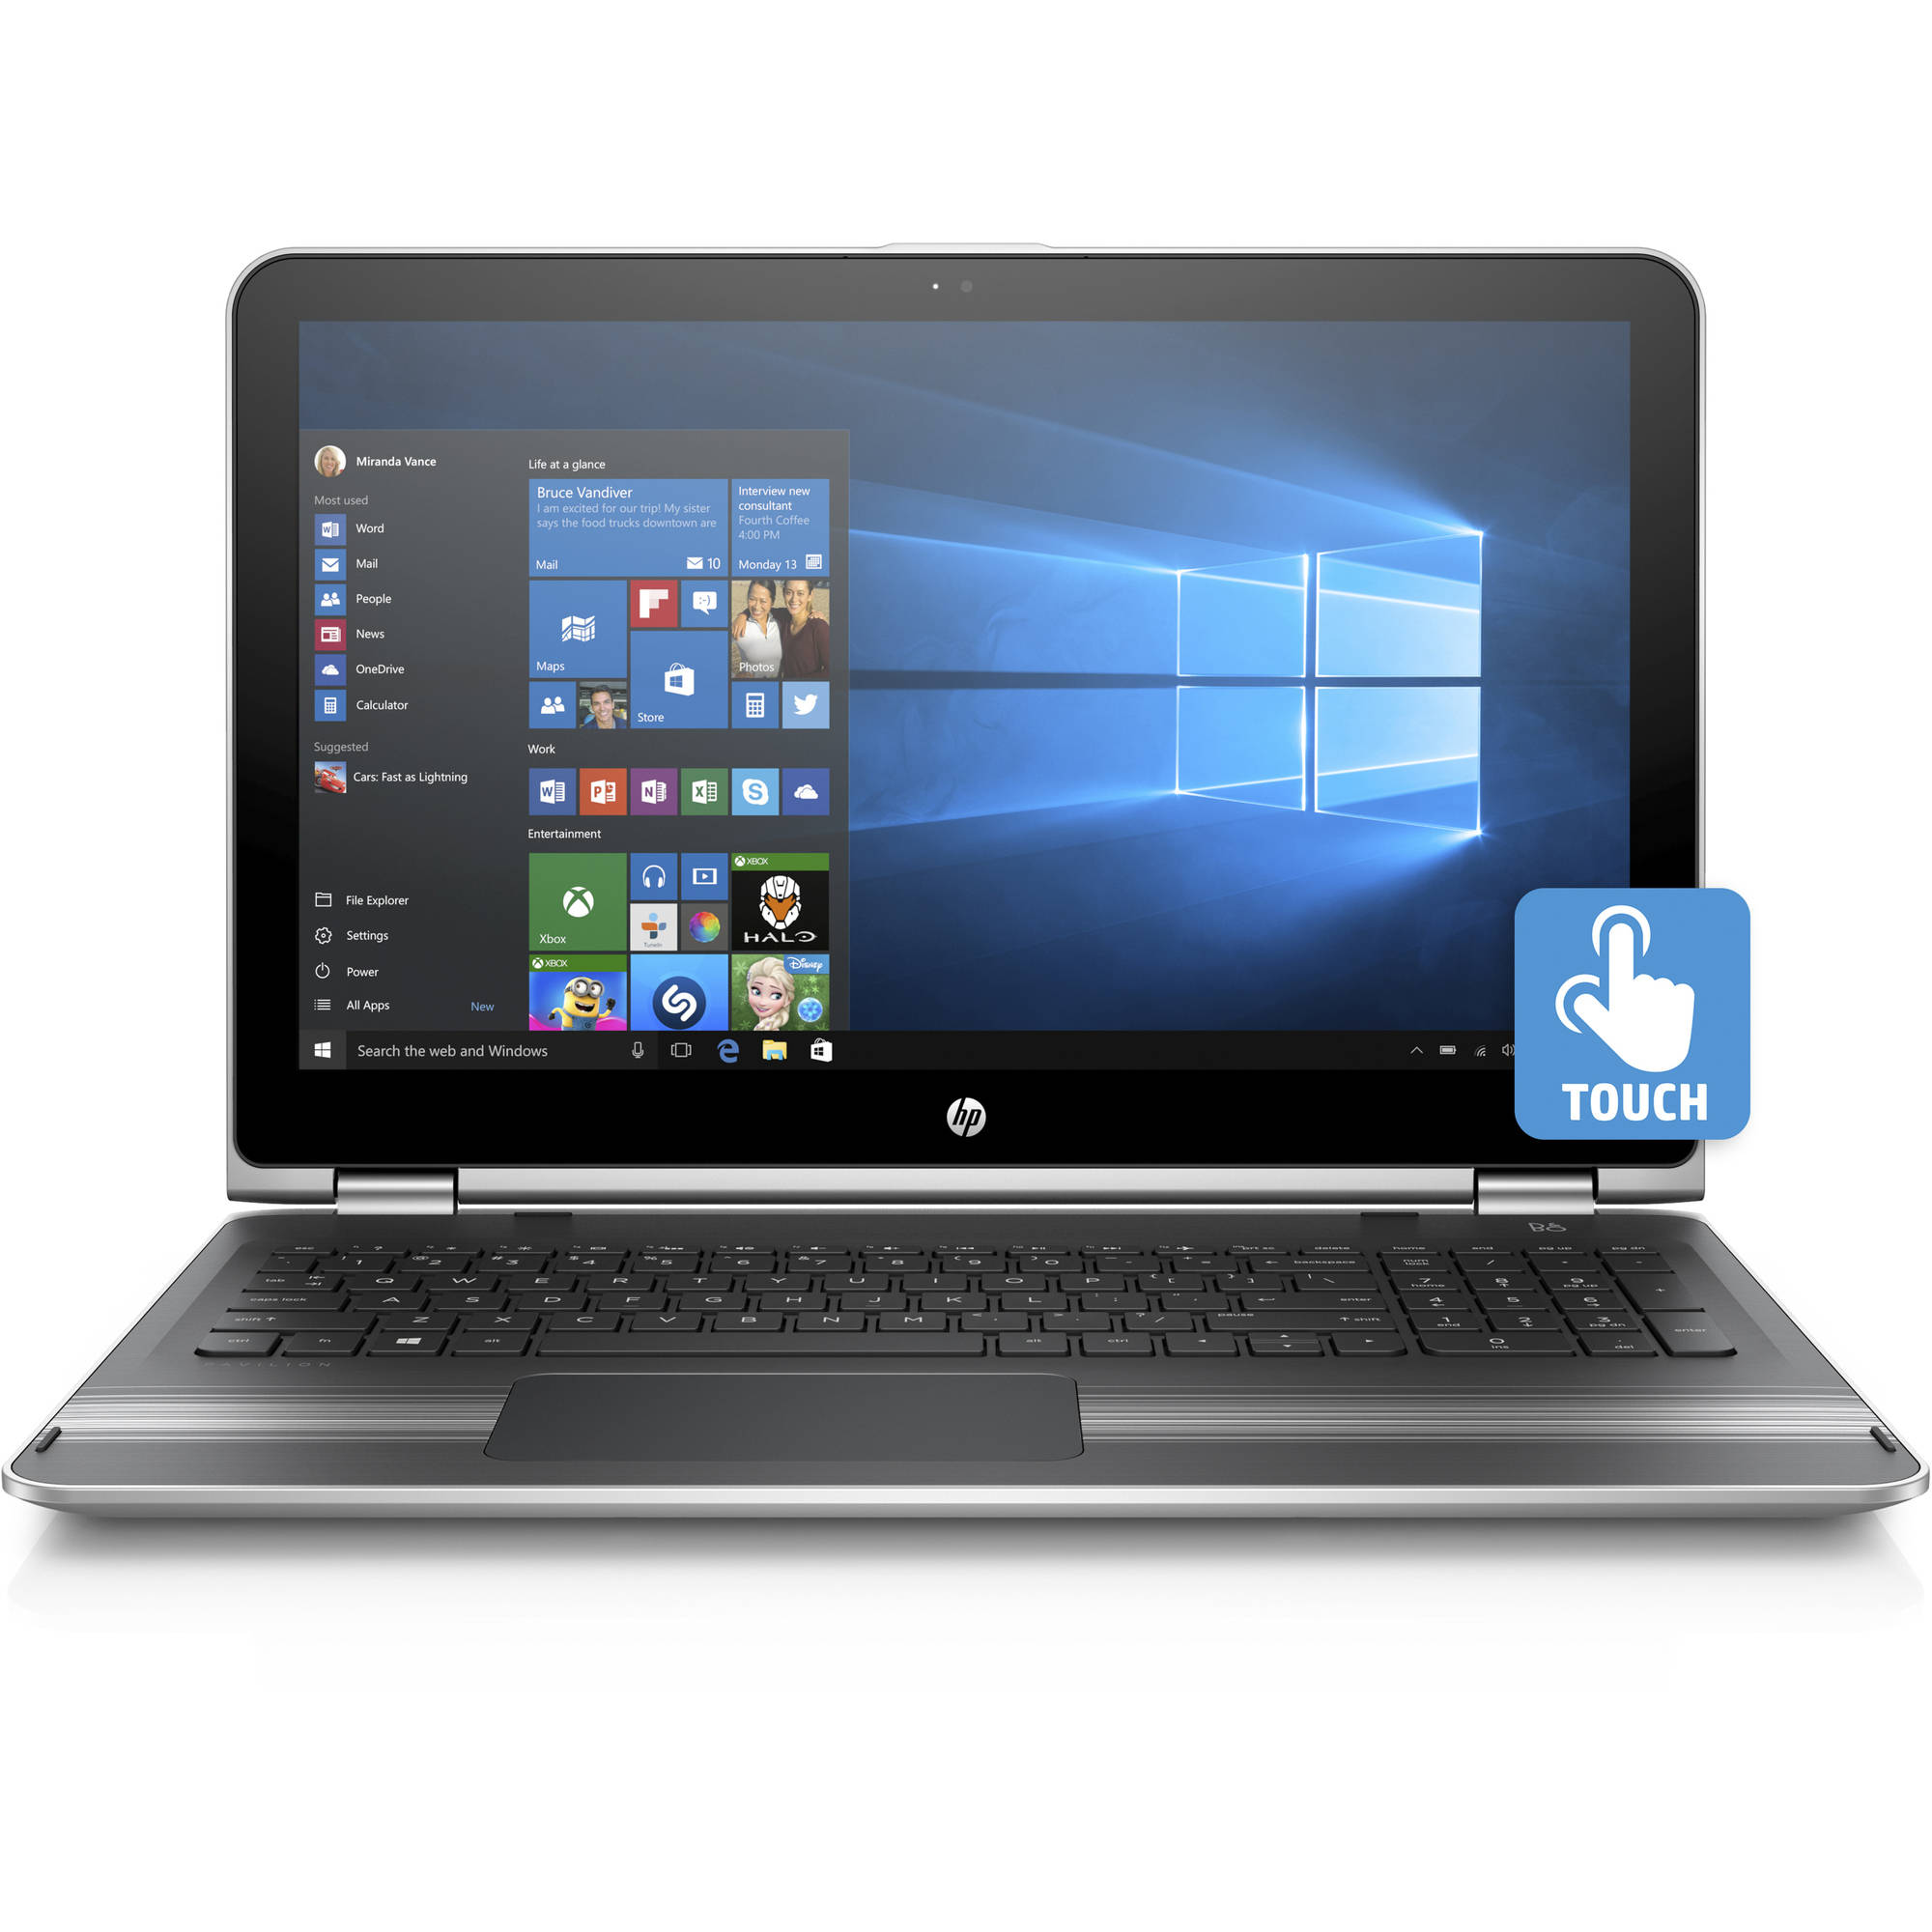 "Refurbished HP Pavilion x360 15-bk020wm 15.6"" Laptop, Touchscreen, 2-in-1, Windows 10 Home, Intel Core i5-6200U... by HP"